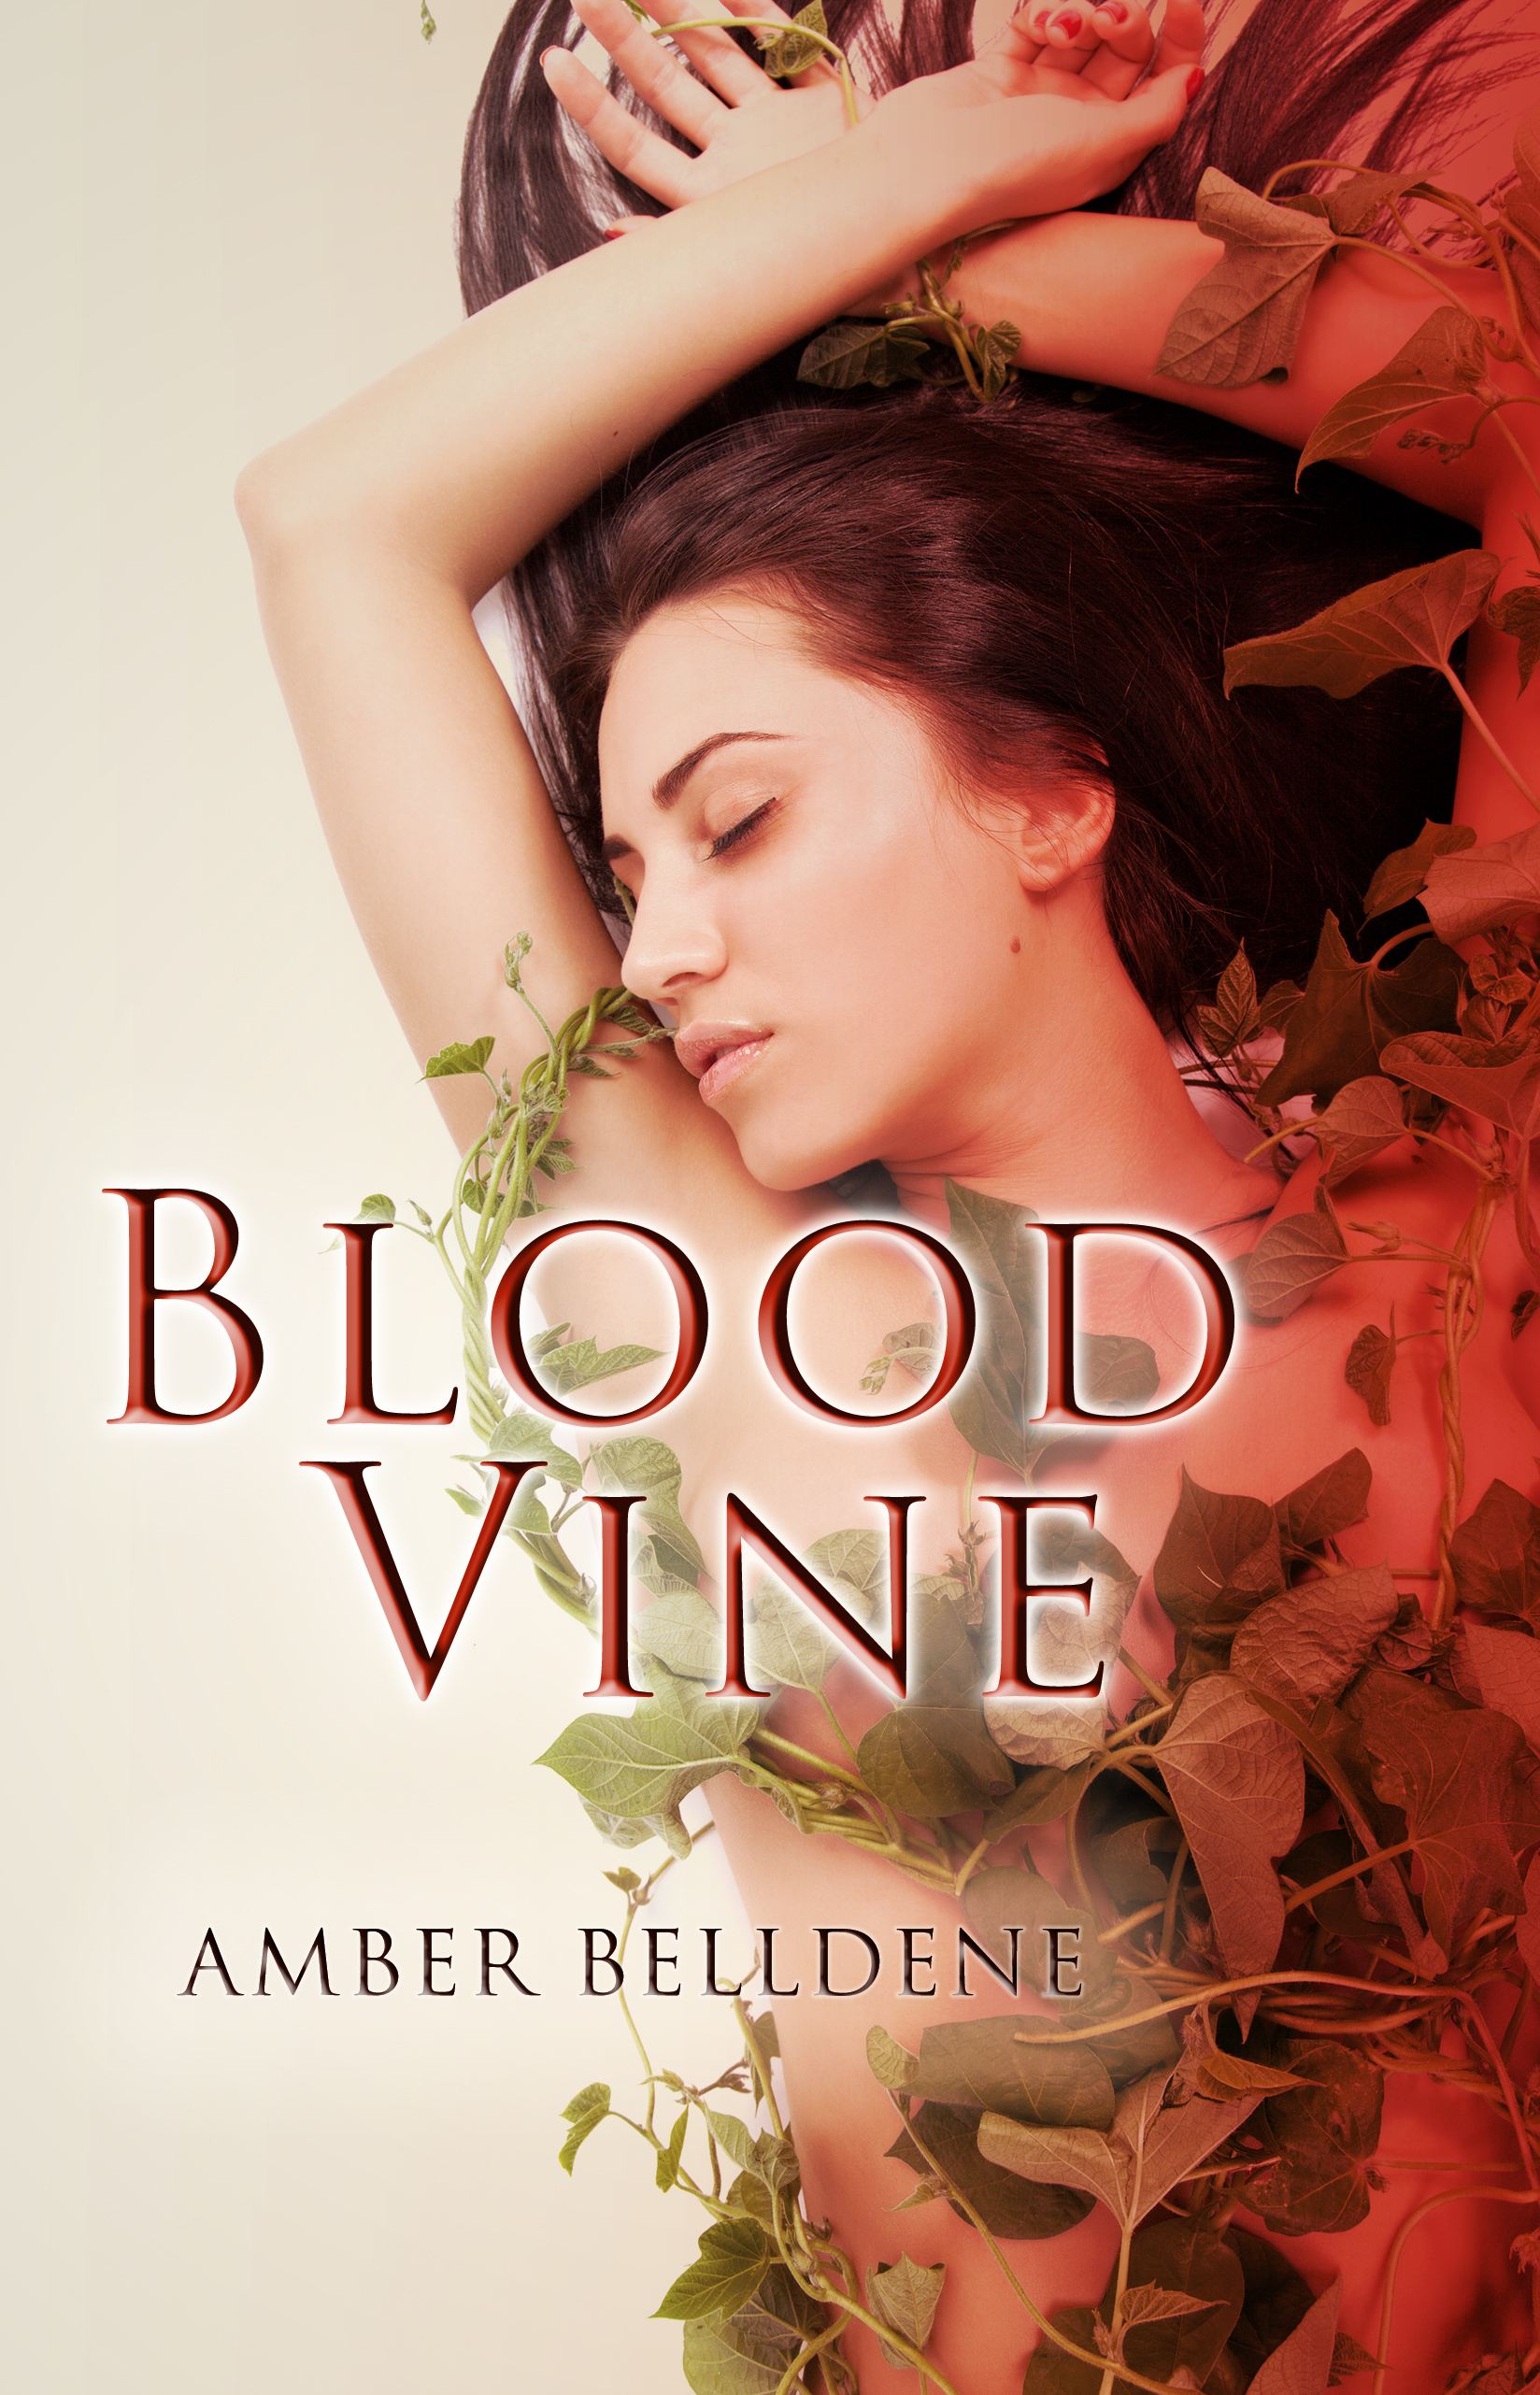 BLOOD-VINE